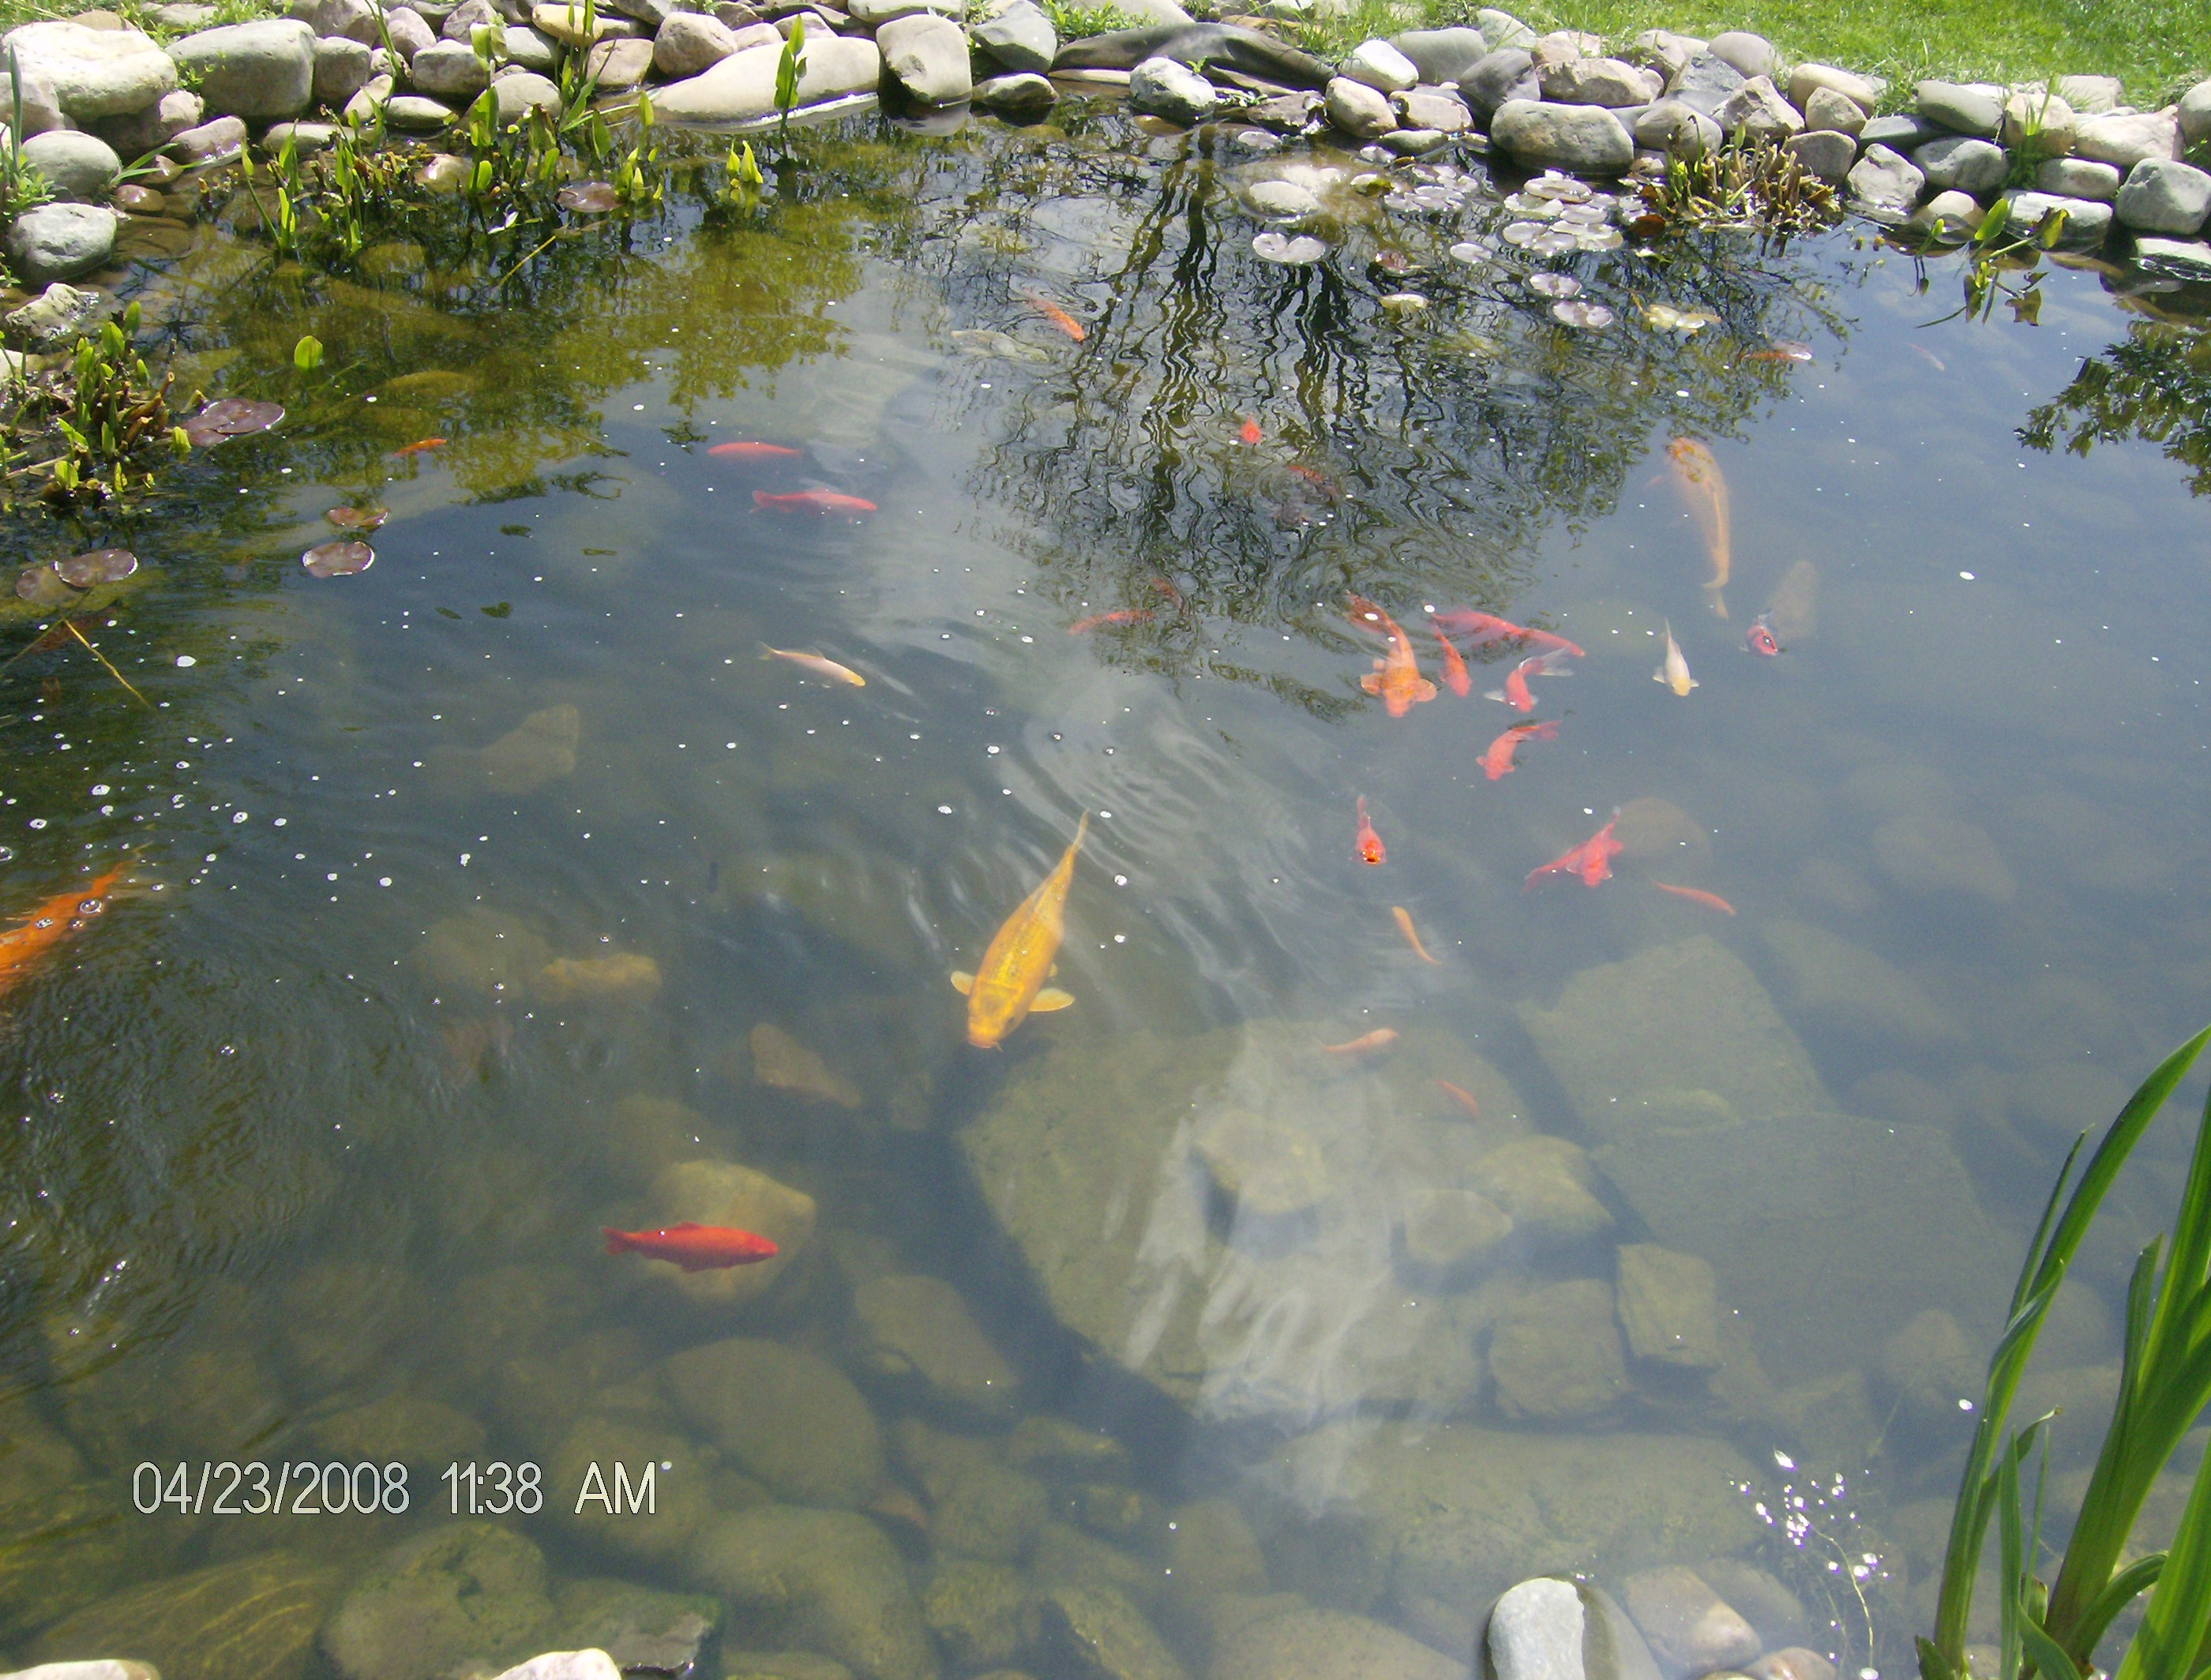 Goldfish Types For Ponds